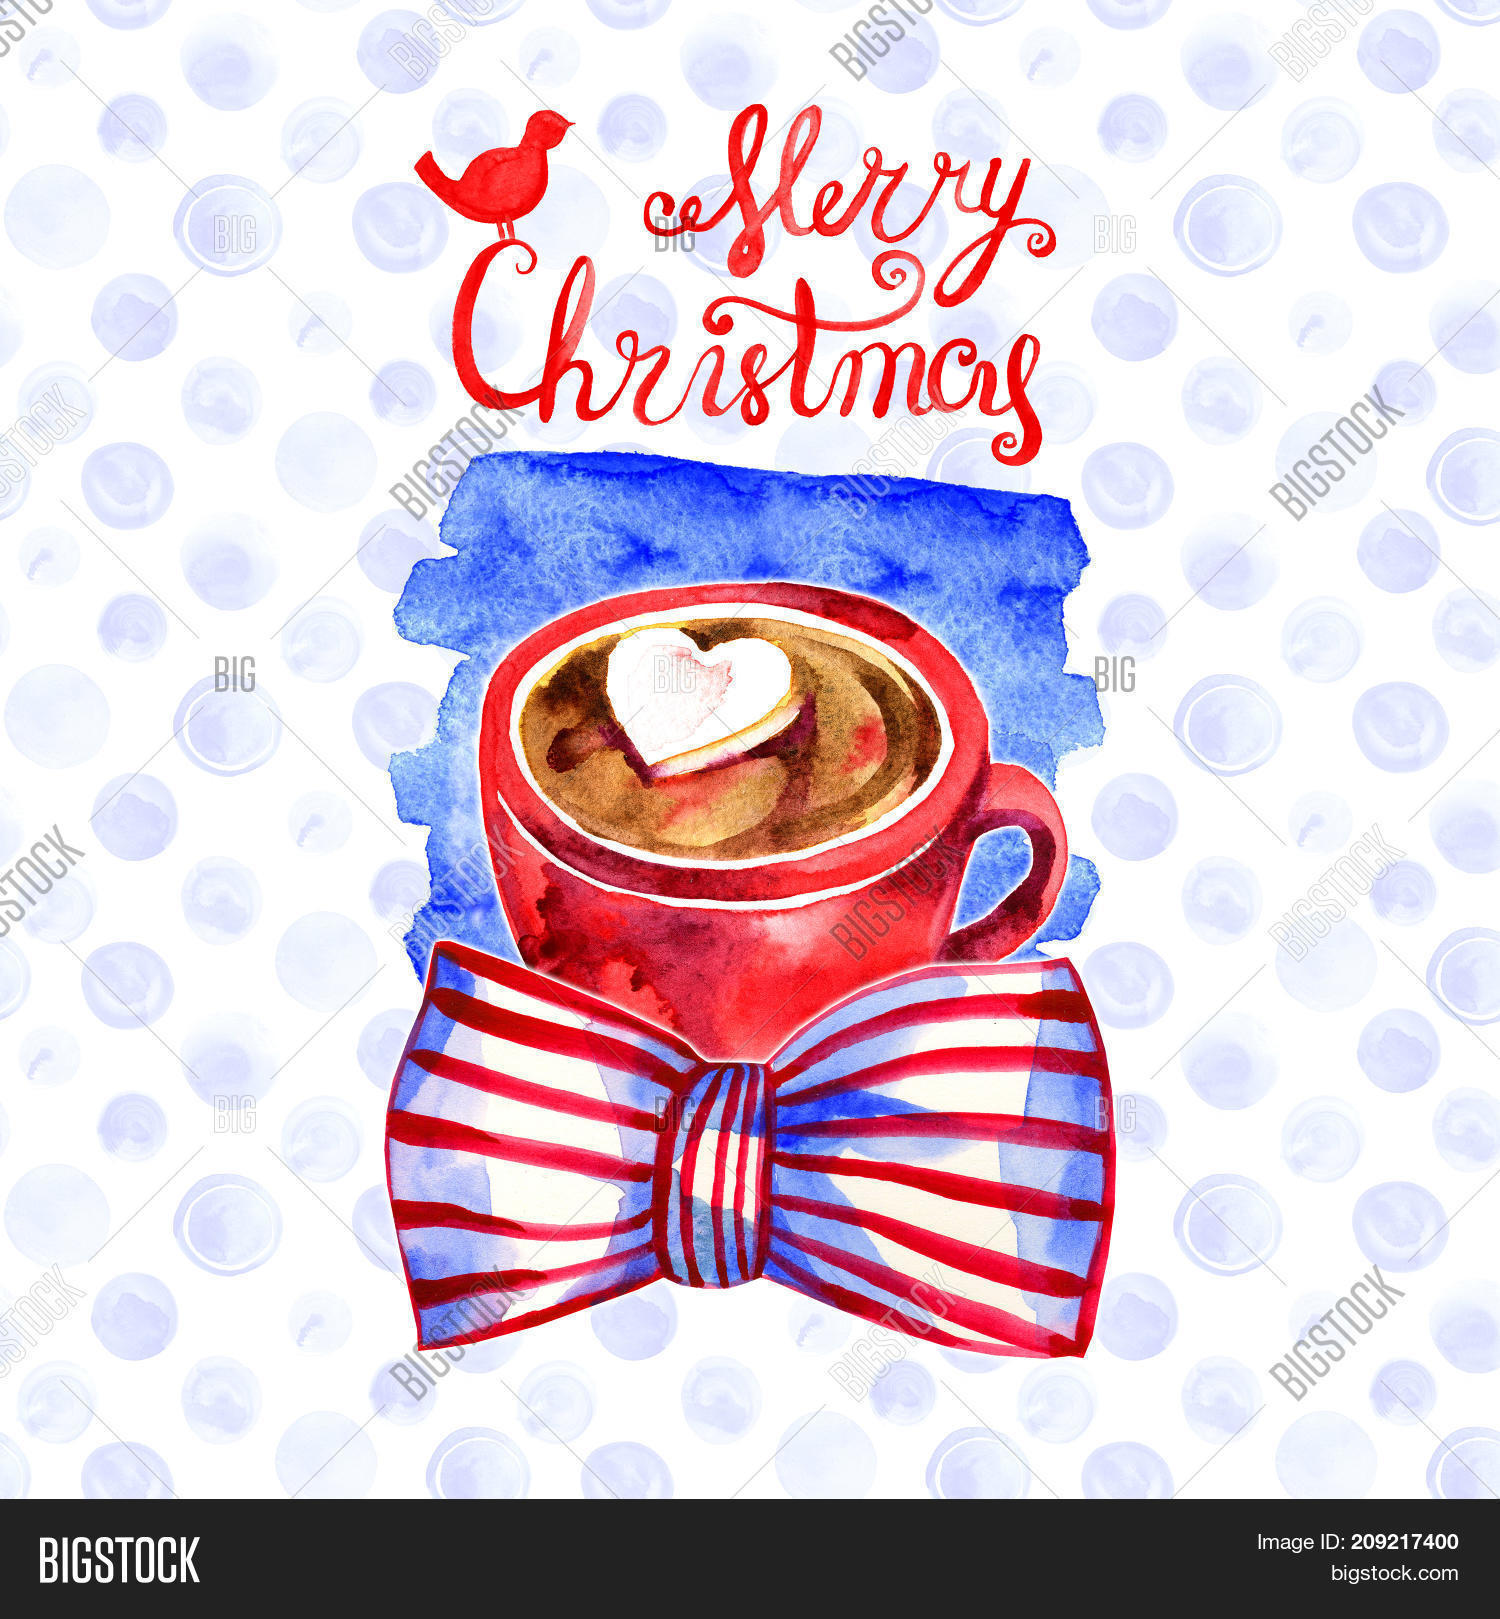 cute winter greeting card with a mug of hot chocolate merry christmas and happy new